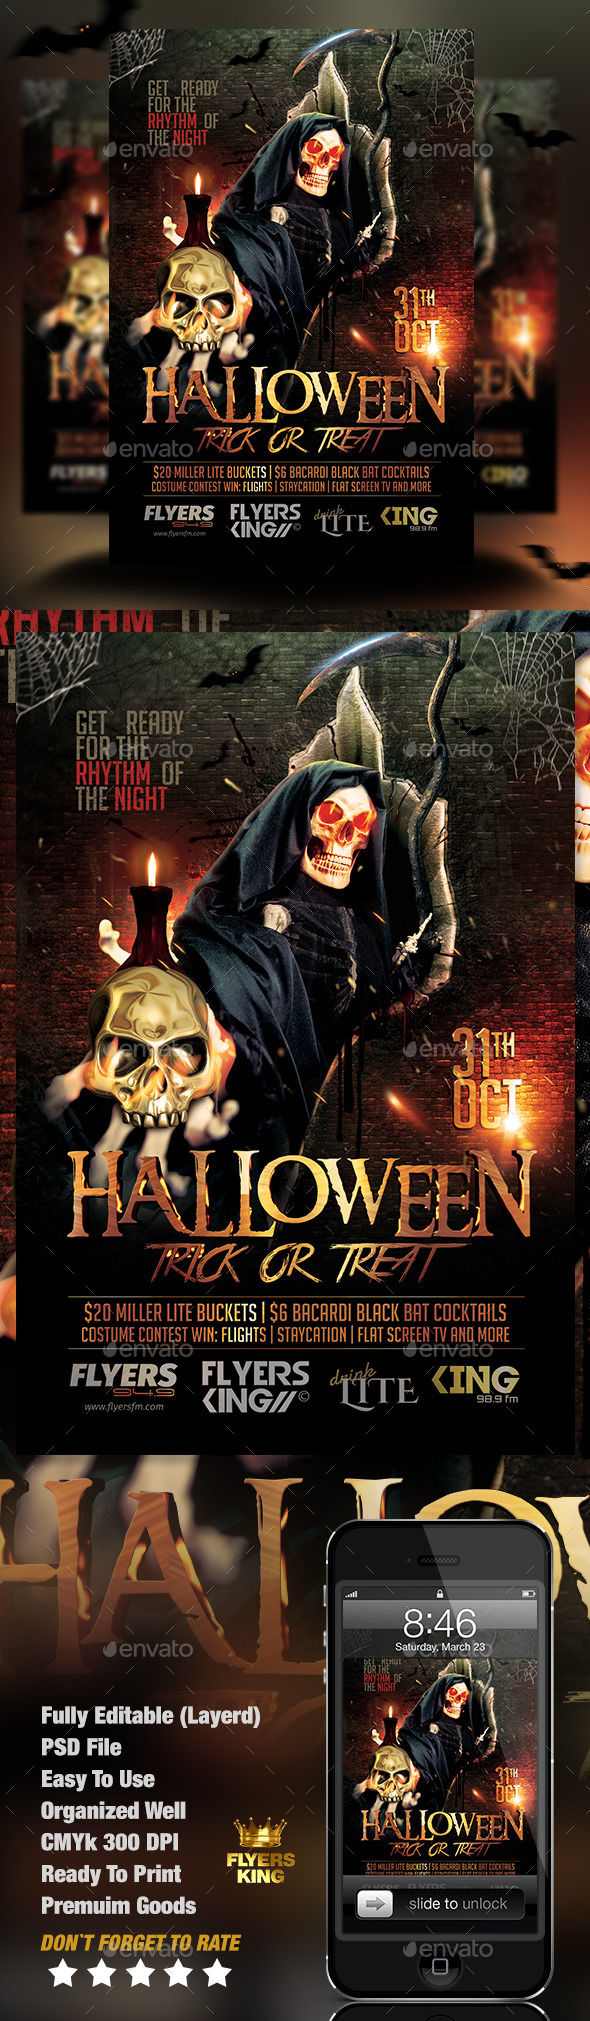 Halloween Party Flyer by FlyersKing (Halloween party flyer)